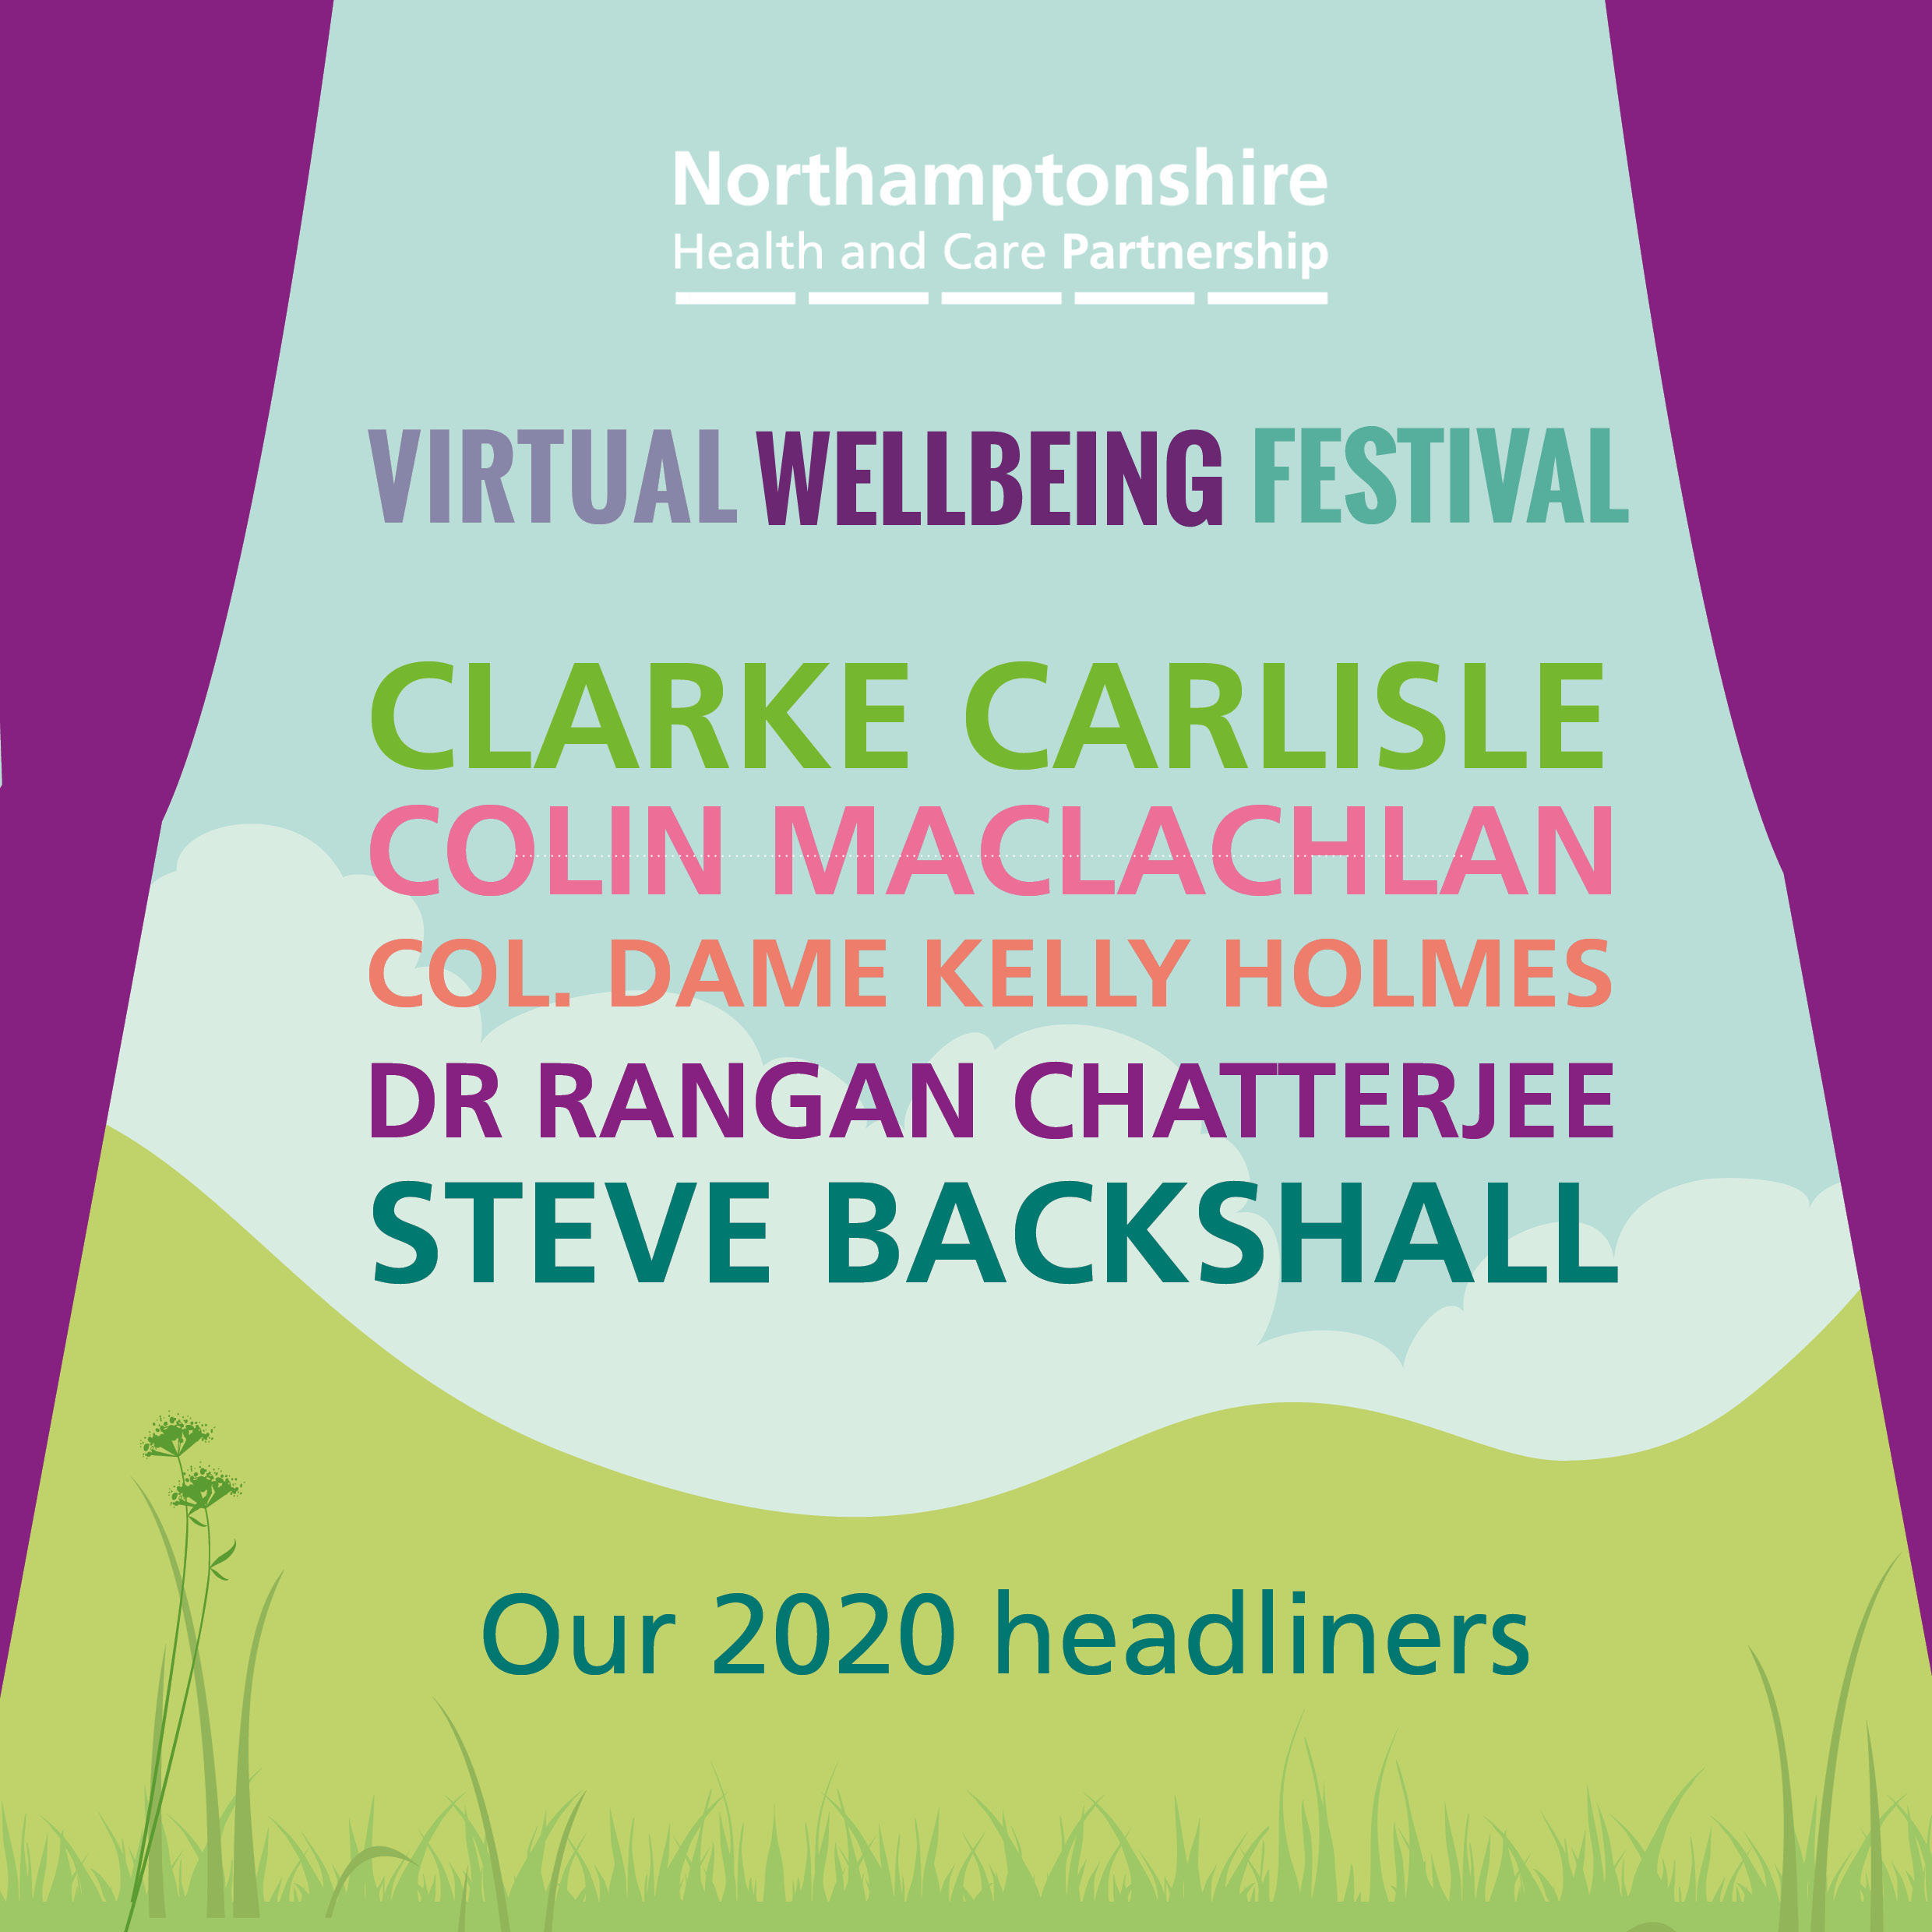 Virtual Wellbeing Festival 2020 headliners, including Clarke Carlisle, Colin MacLachlan, Col. Dame Kelly Holmes, Dr Rangan Chatterjee and Steve Backshall.